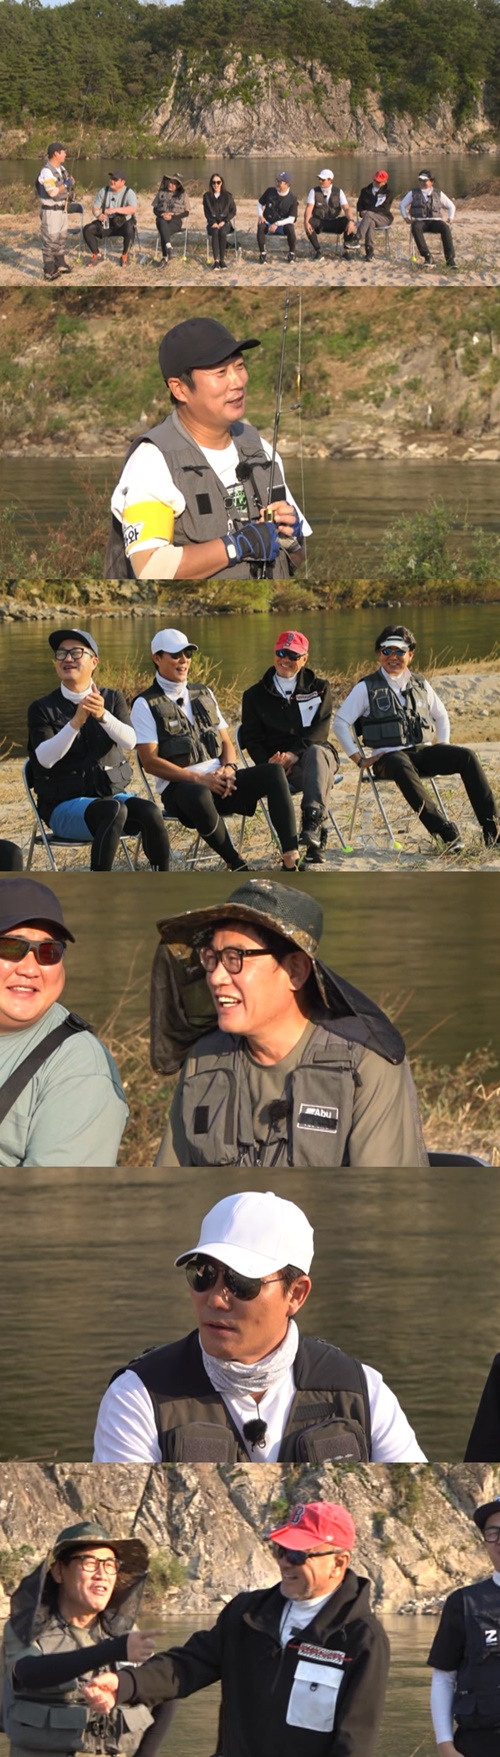 'Urban Fisherman 2' Lee Soo-geun, the first 'Follow Me' armband... Enthusiasm Full Level X Motivation Explosion